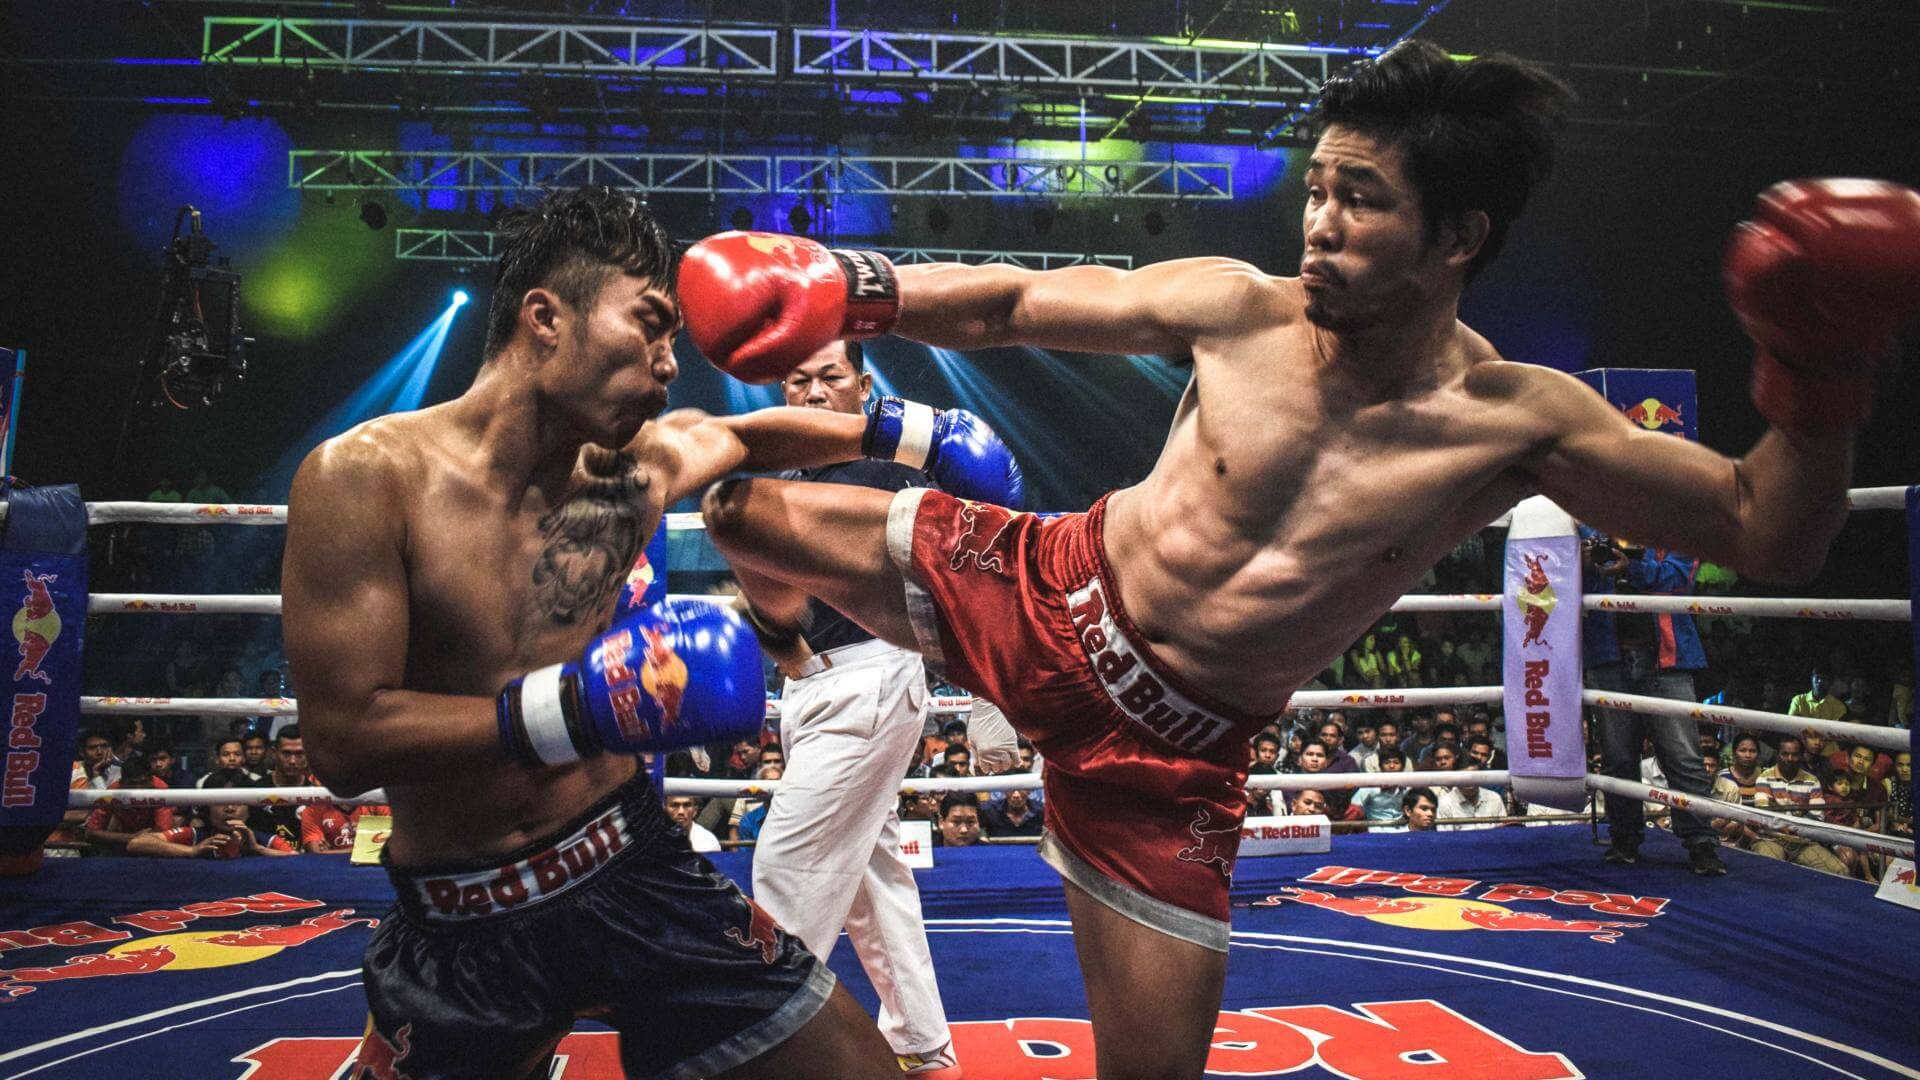 Two men are fighting against each other with fists in Bangkok.